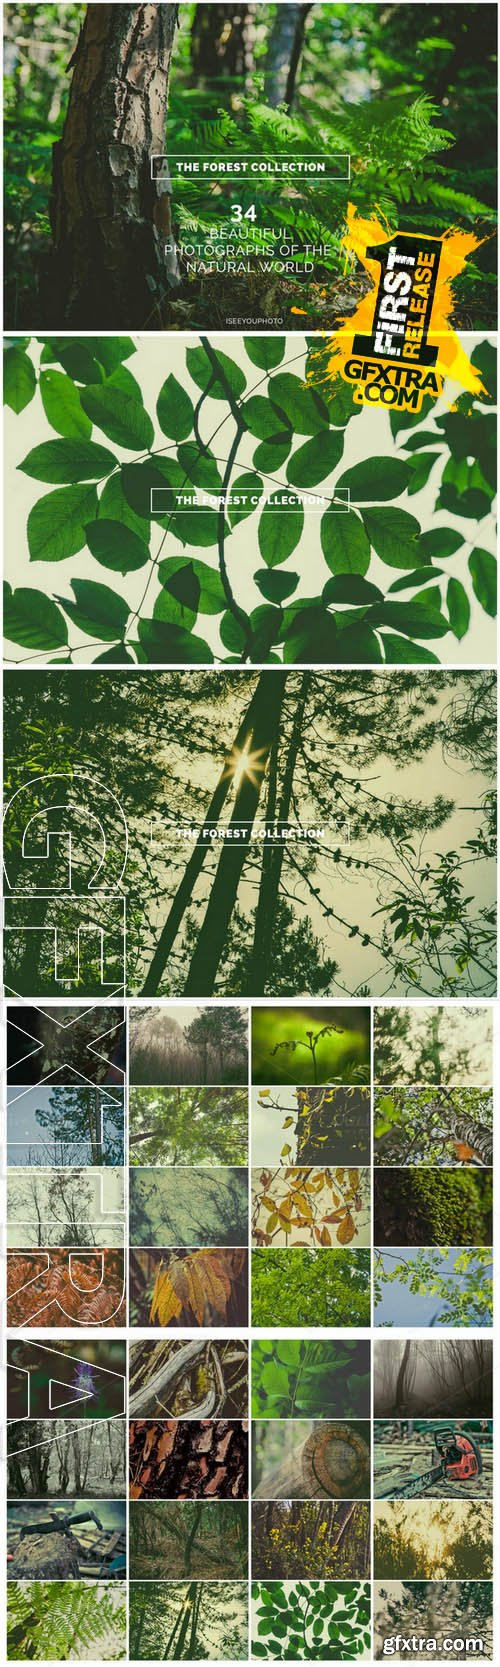 The Forest Collection - Iseeyouphoto - Creativemarket 72319